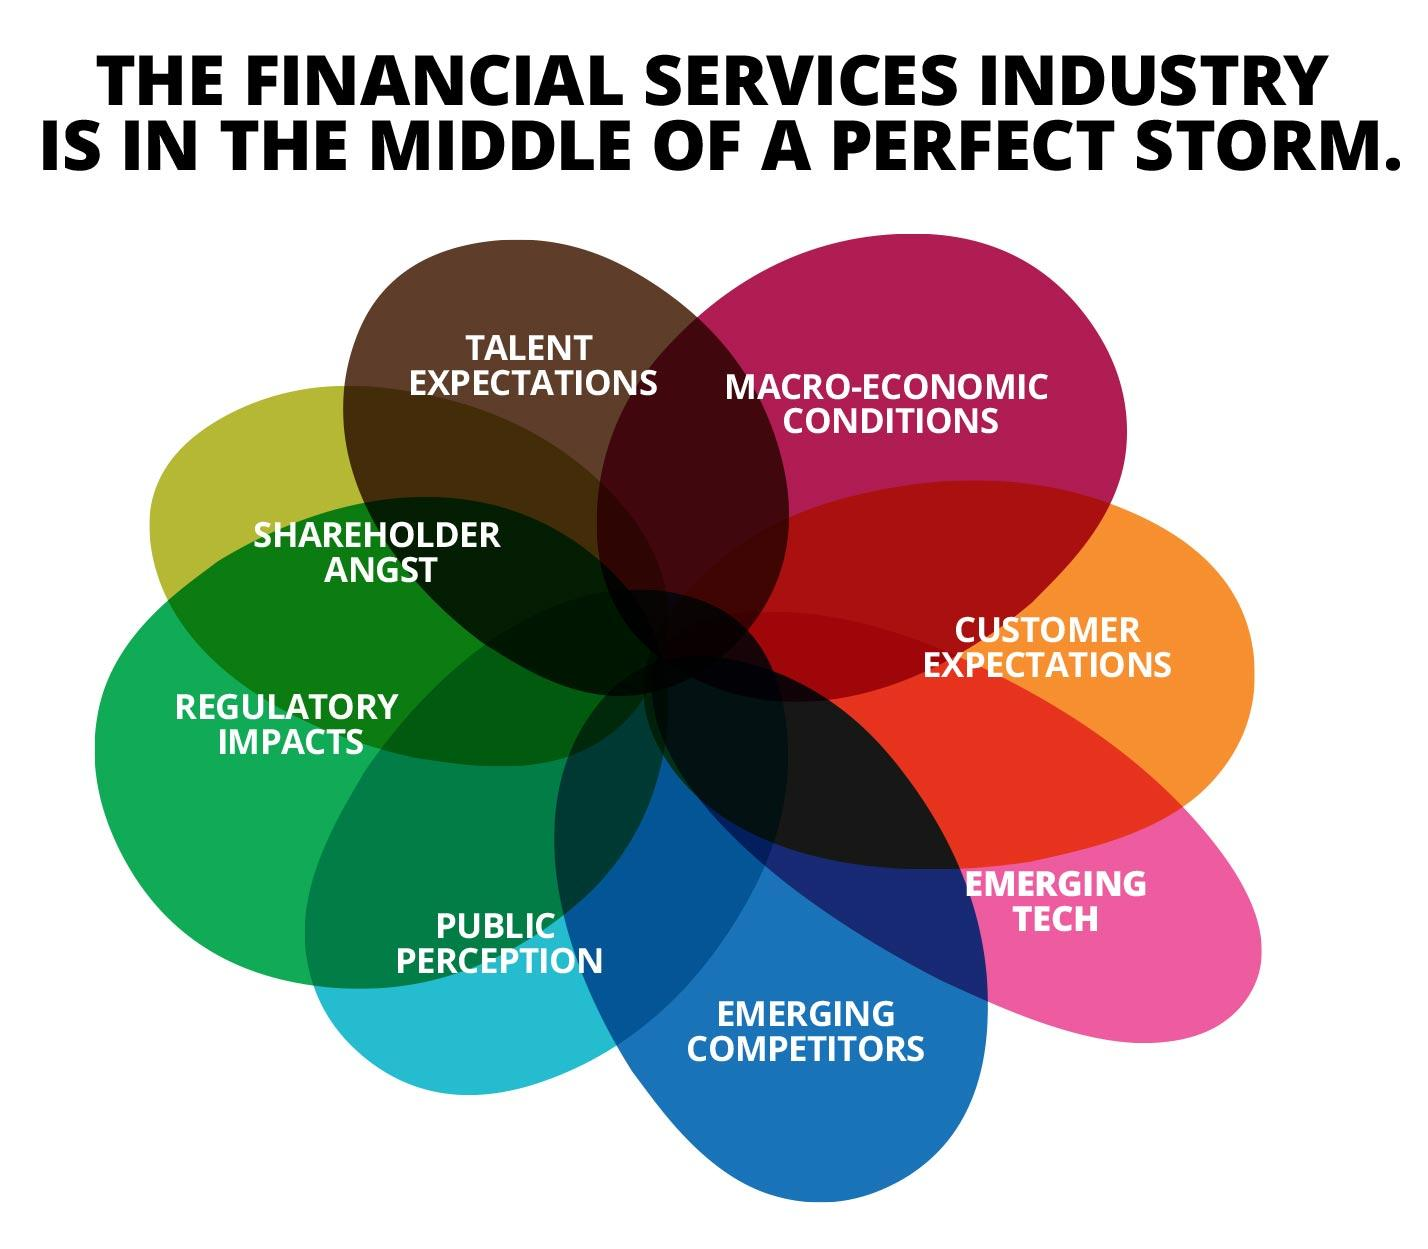 The Financial Services industry is in the middle of a perfect storm